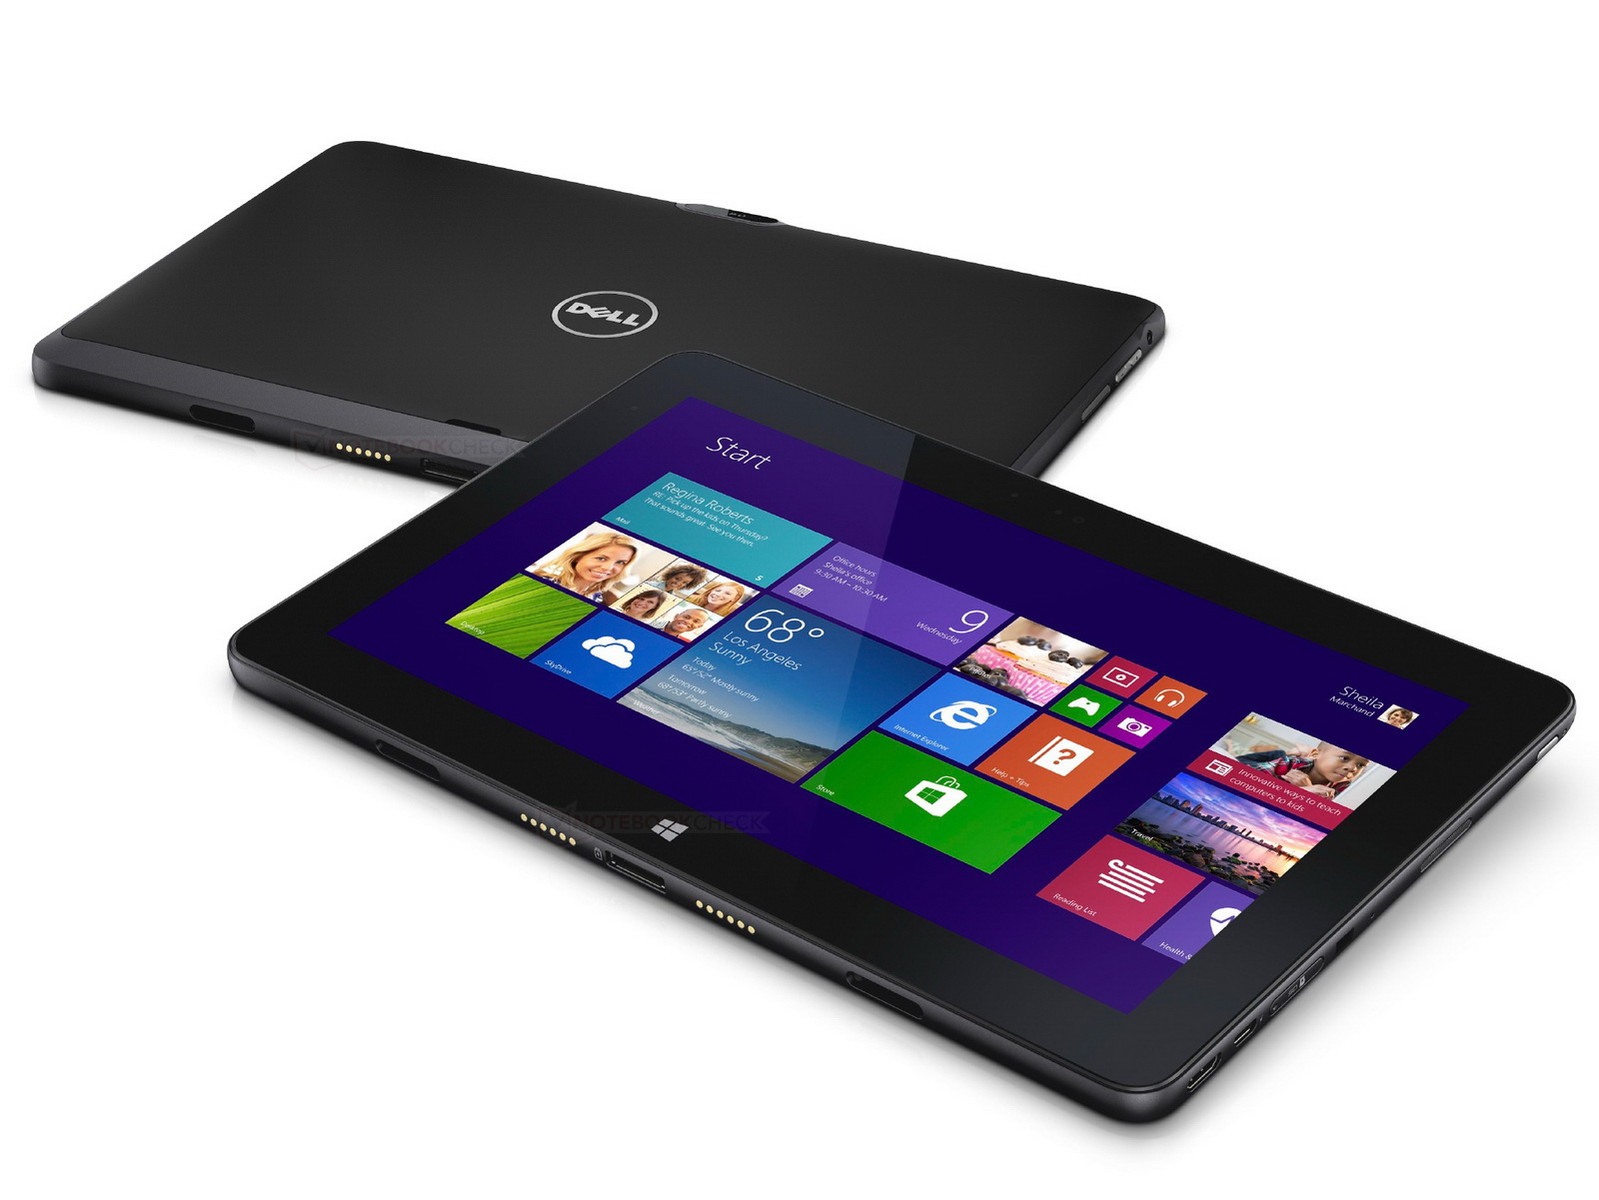 Dell Venue 11 Pro 5130 Tablet Review - NotebookCheck net Reviews